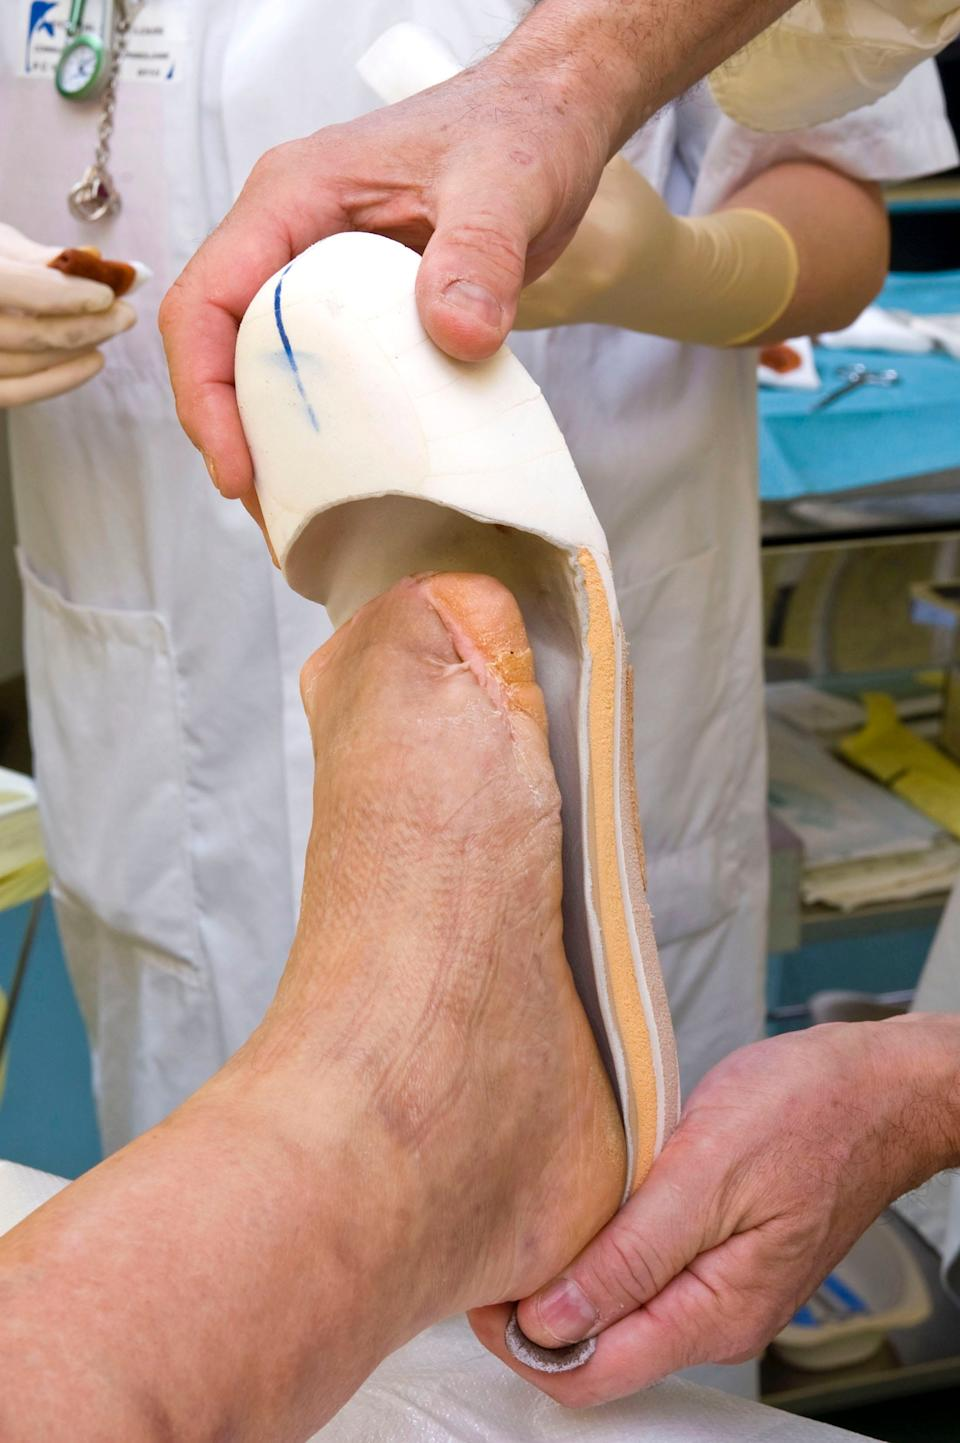 A diabetic's foot after a transmetatarsal amputation of toes and forefoot due to infected wounds.